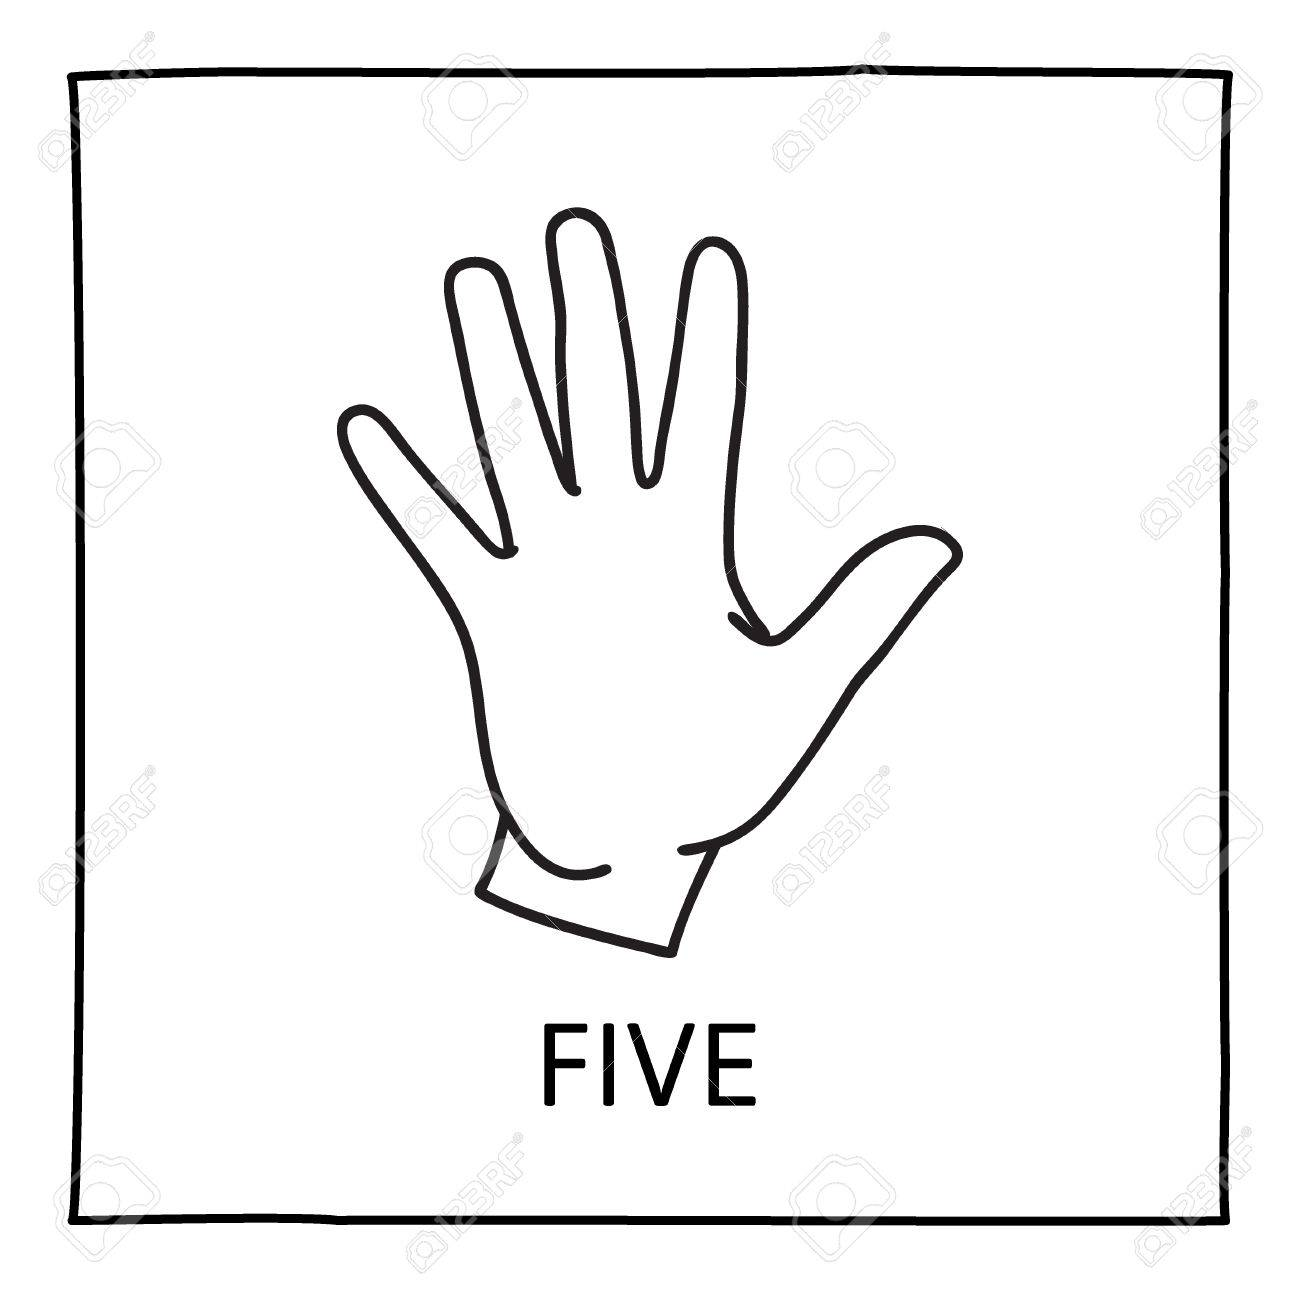 doodle palm icon counting hands showing five fingers graphic